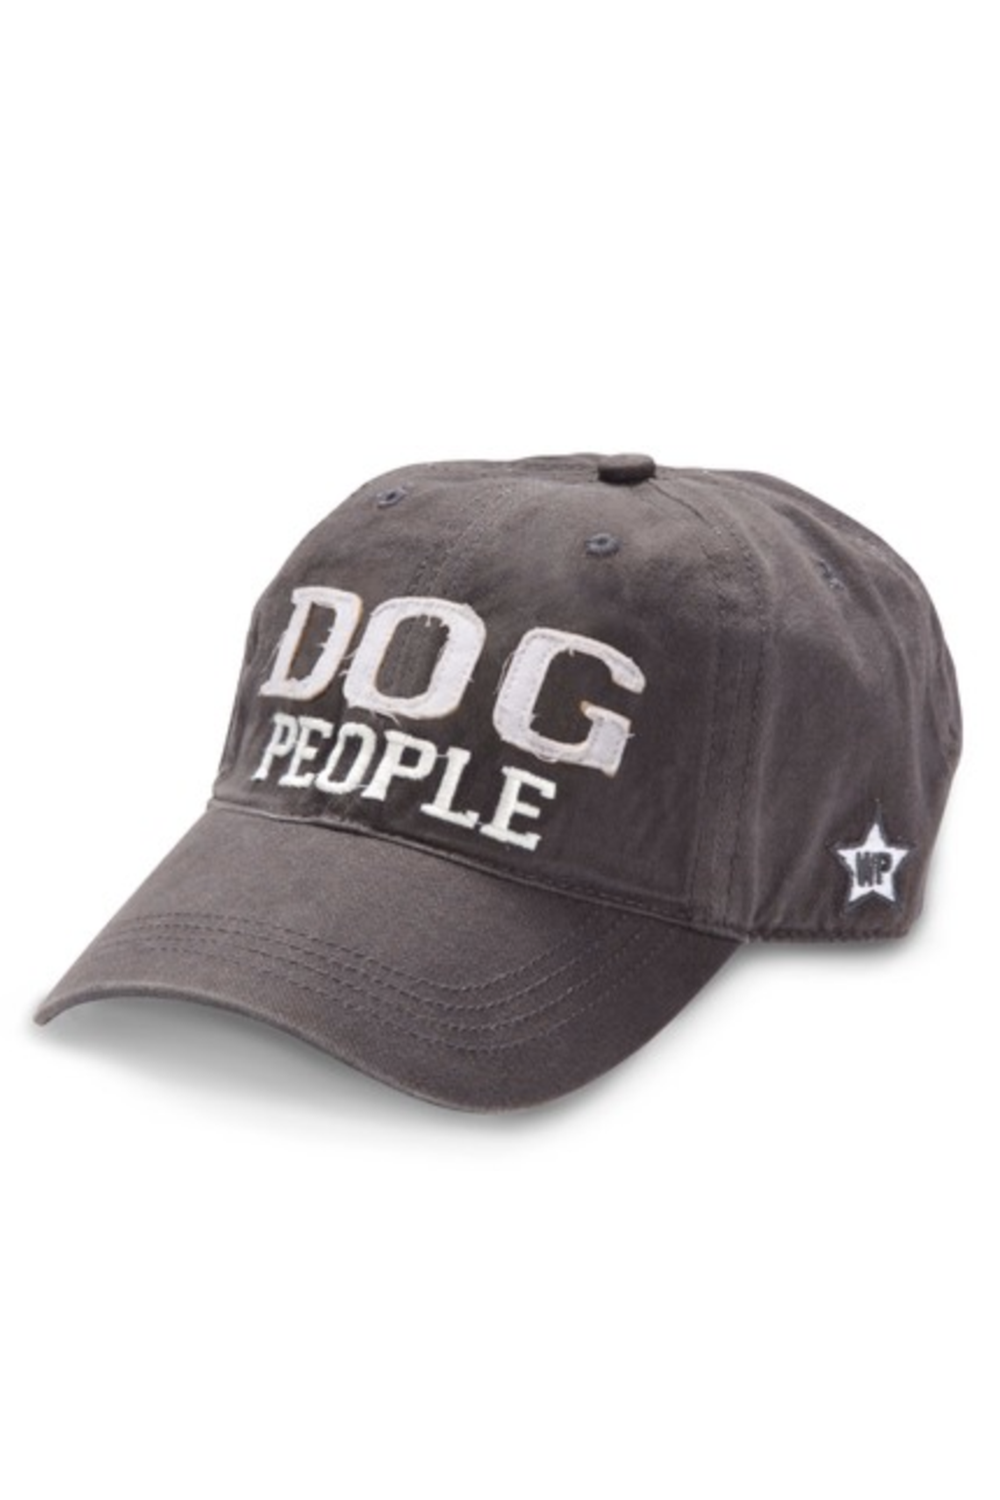 Adjustable Hat - Dog People